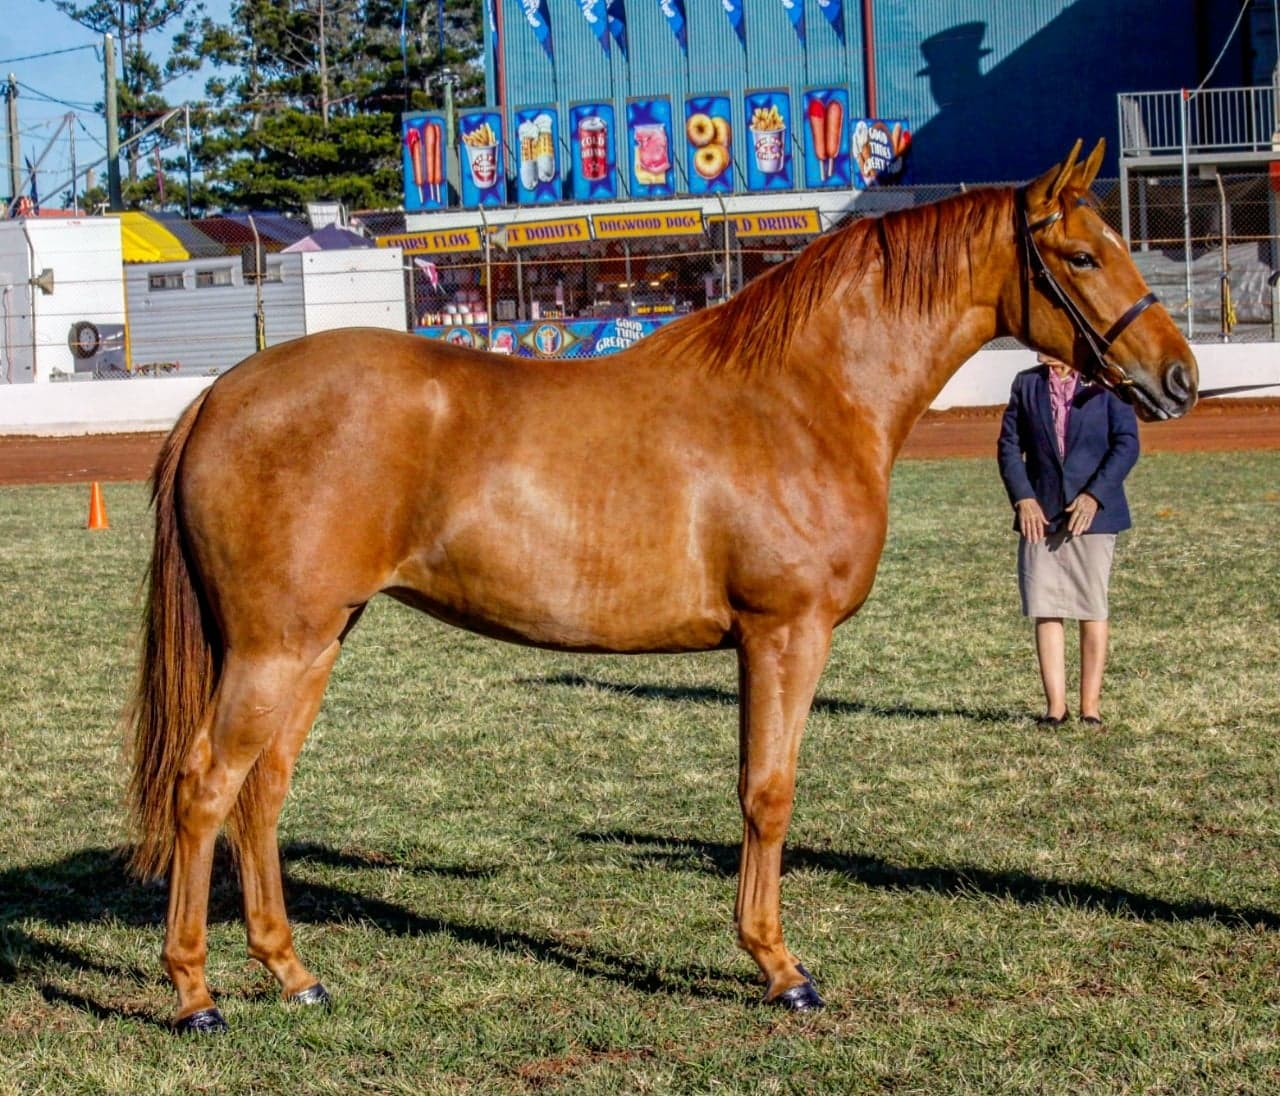 Libby, Waler filly, at Gatton Show 2018